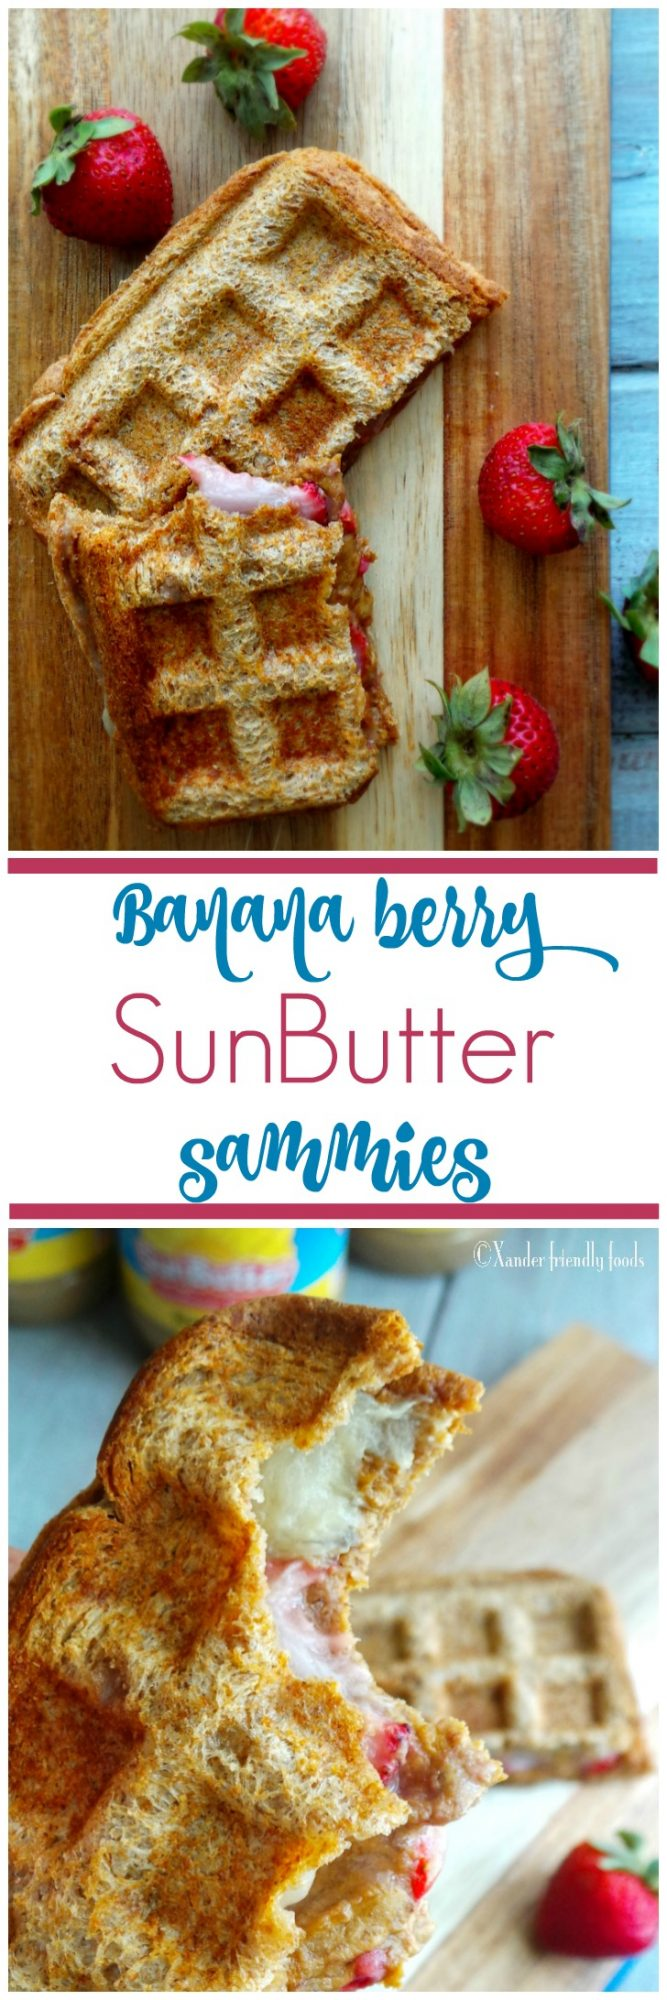 SunButter and bananas is such a classic combination but when you heat it in the waffle iron with a layer of strawberries in the middle, it's simply the best. If you're looking for an easy, yet decadent, allergy-friendly breakfast, brunch, or binge-watching snack, make this.